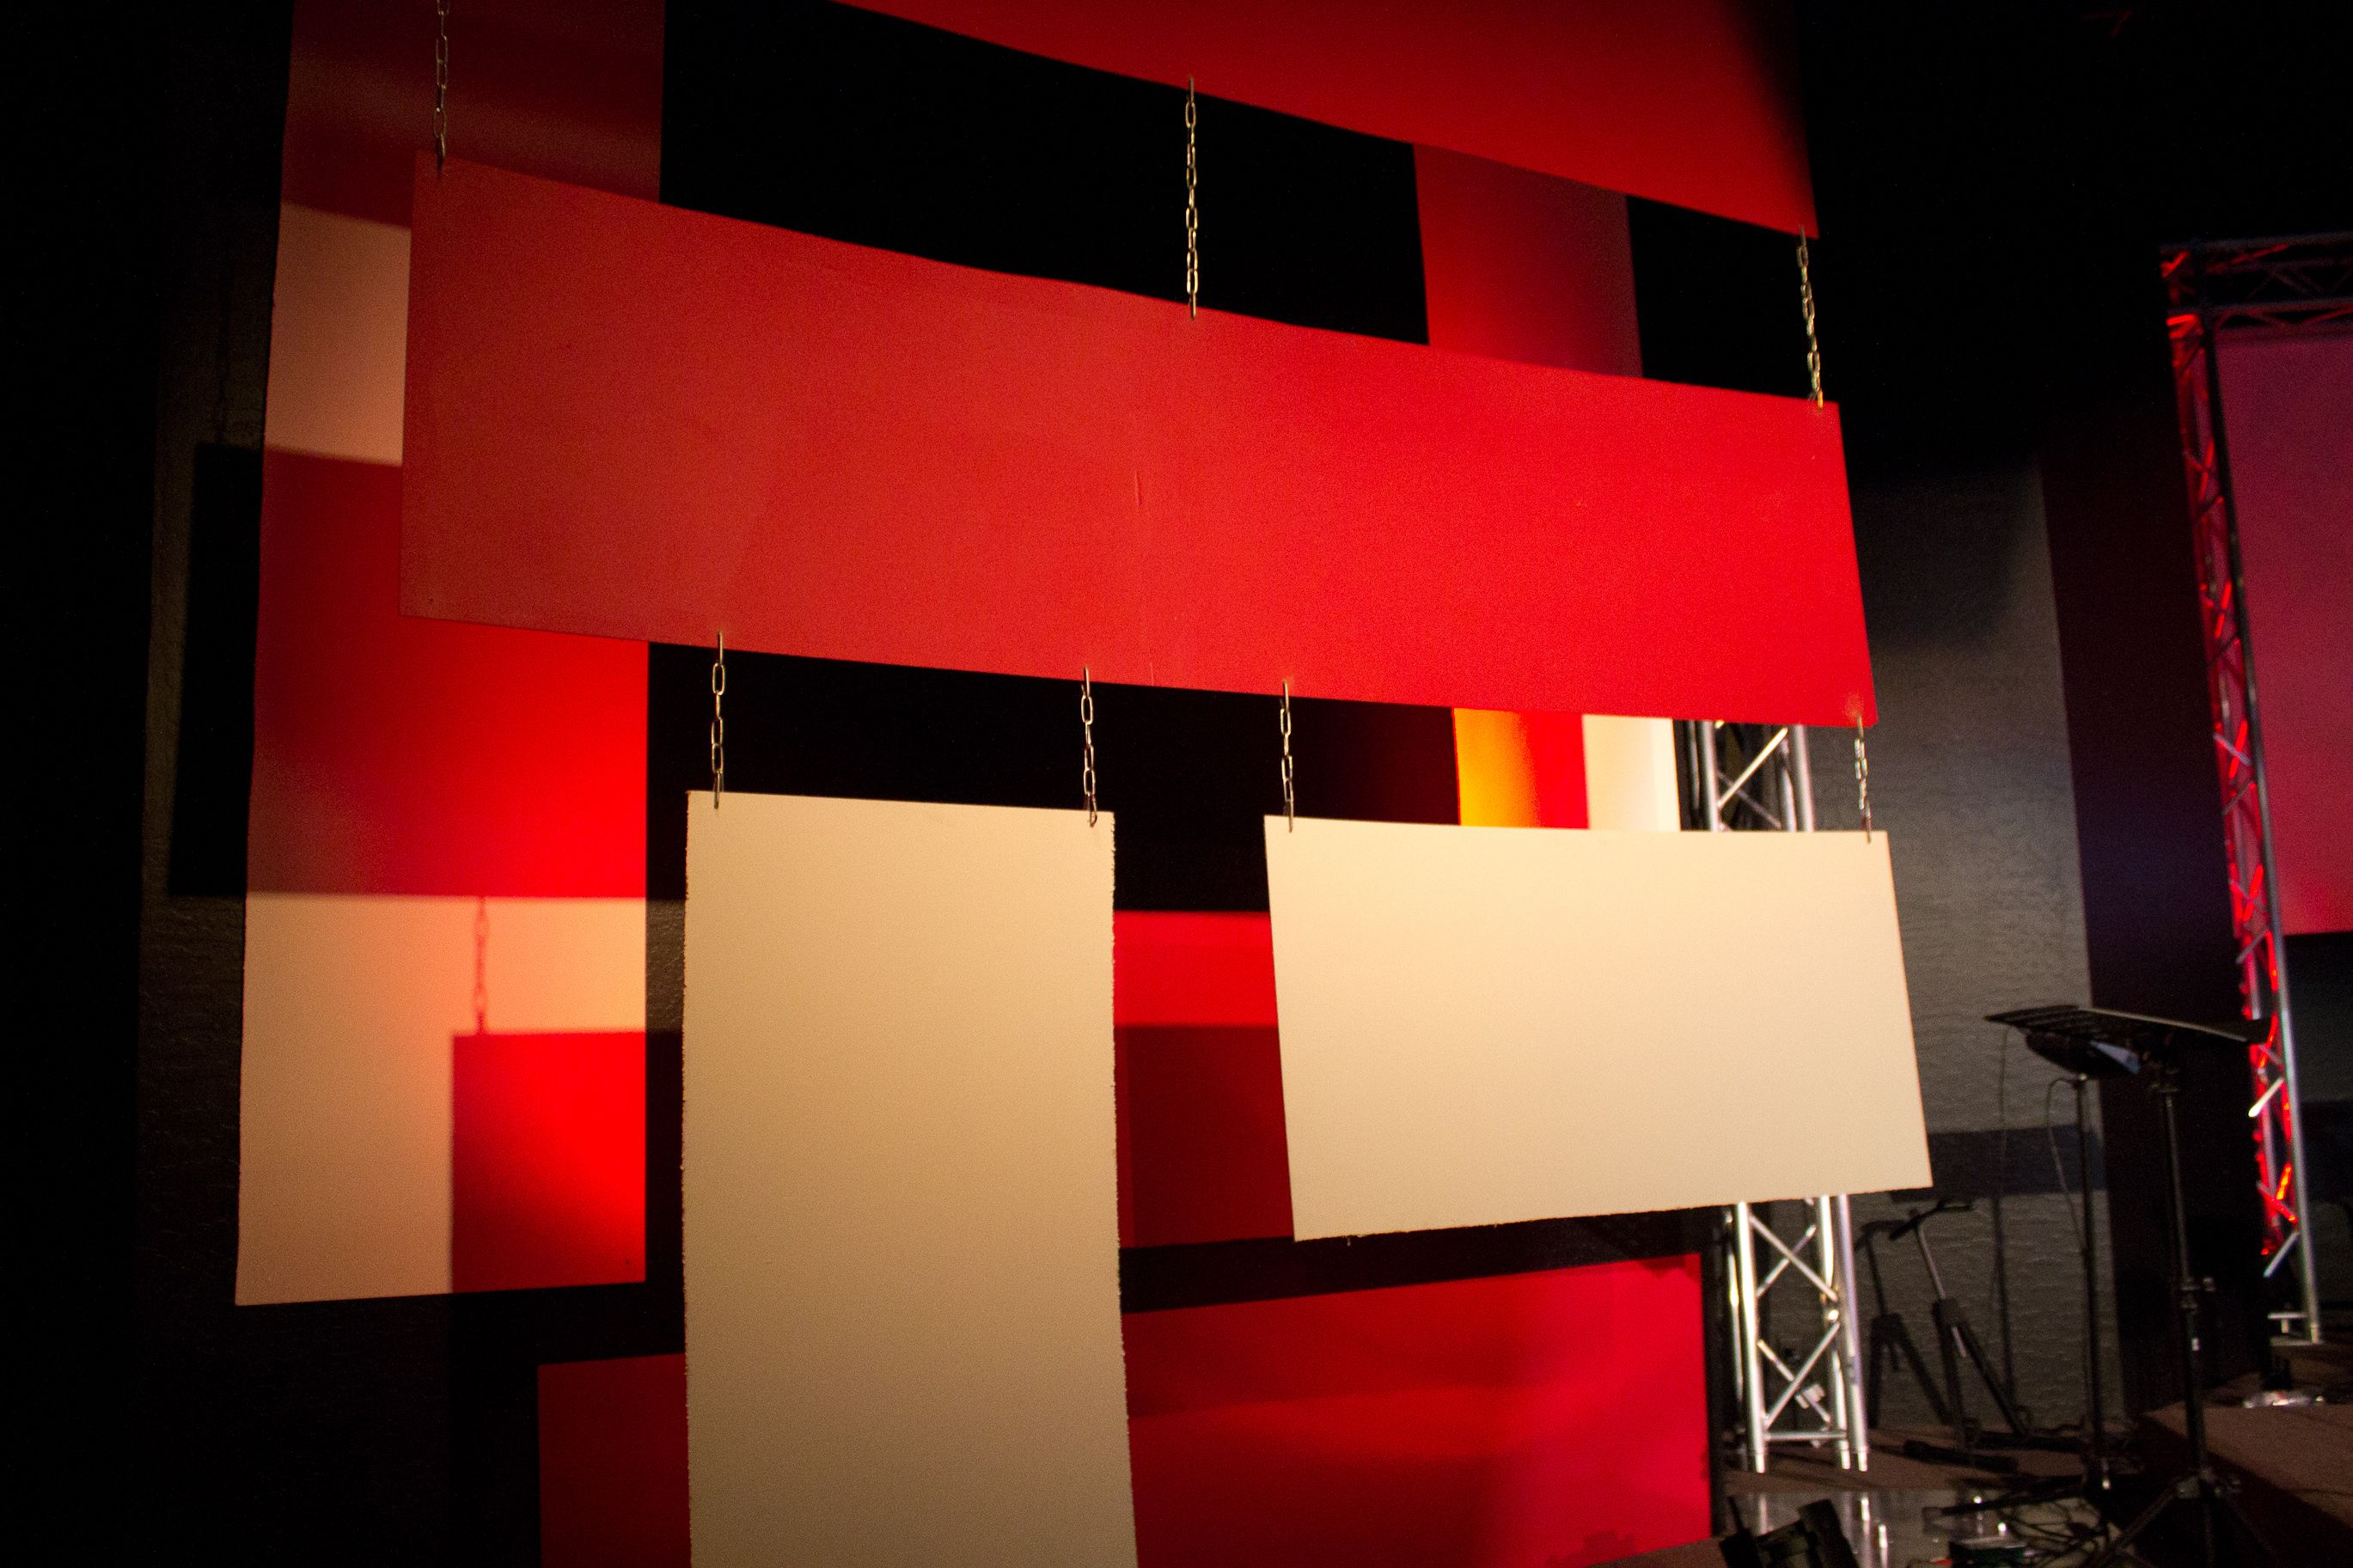 The white and red panels were cut out of masonite and hung with chain. The panels were front lit with traditional Par cans and 4 LED lights were using to provide some color on the walls behind the panels.